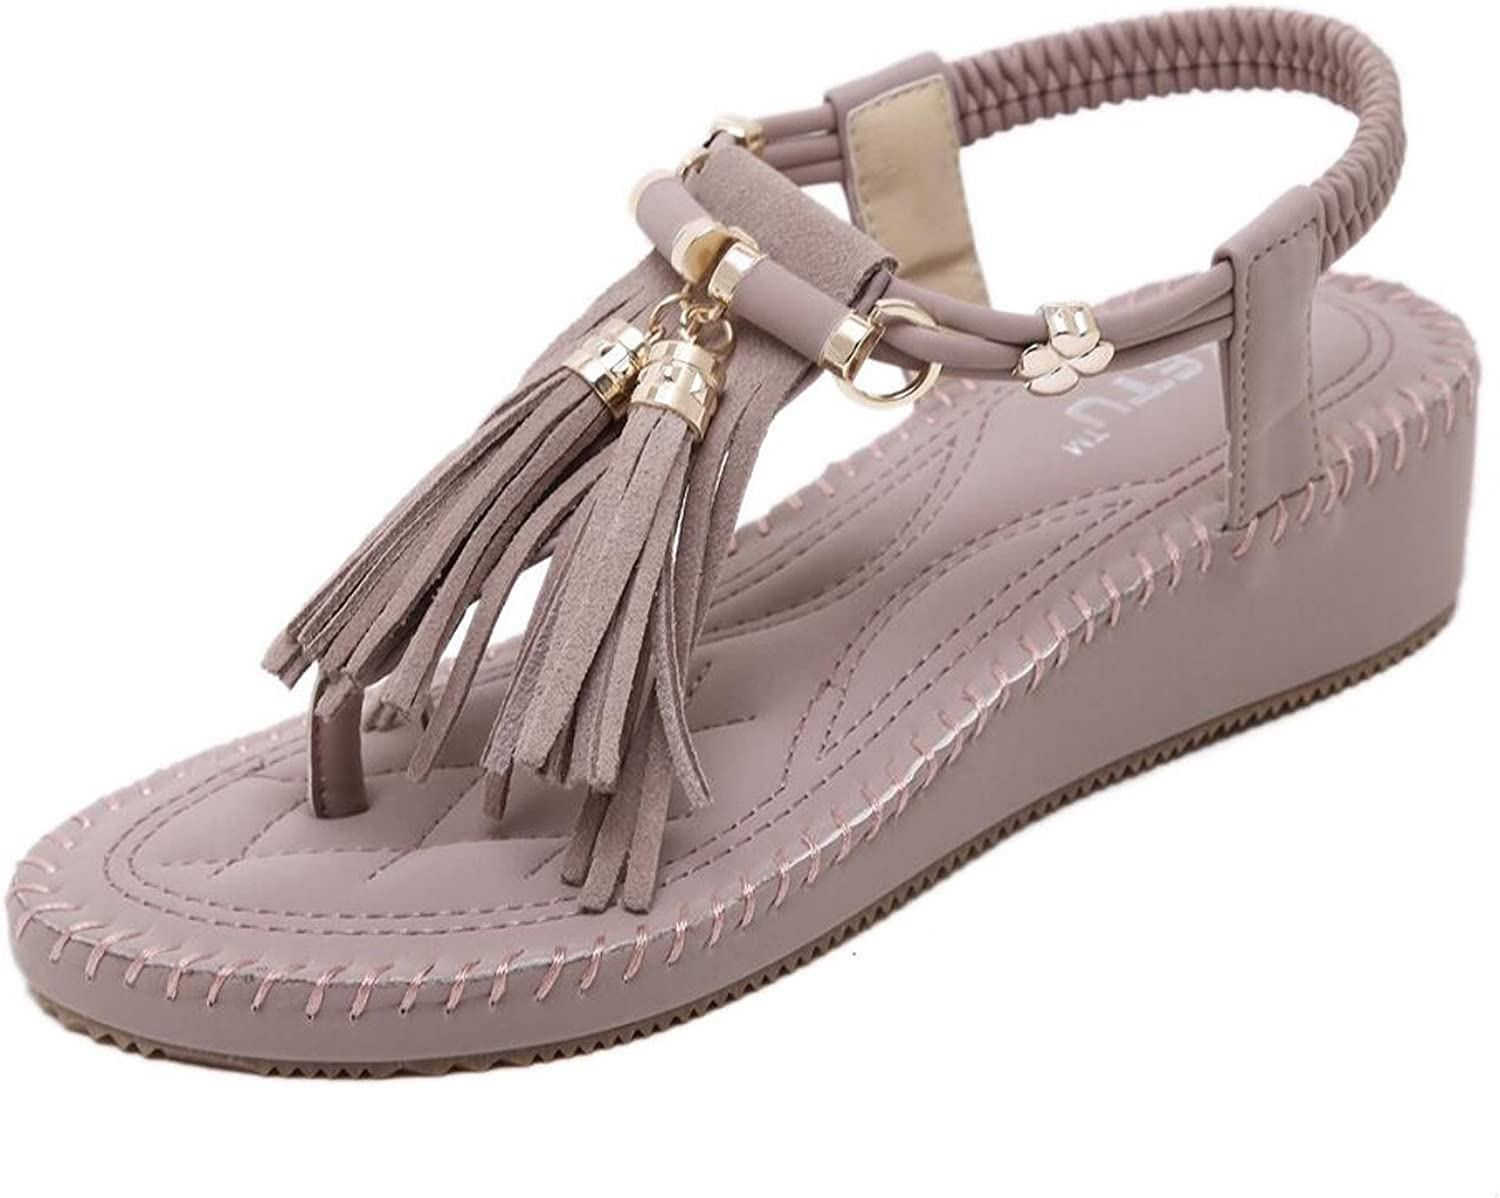 Ladies Clip Toe Sling Back T-Bar Tassel Fashion Flat Diamante Flip Flop Sandals (color   Purple, Size   36)